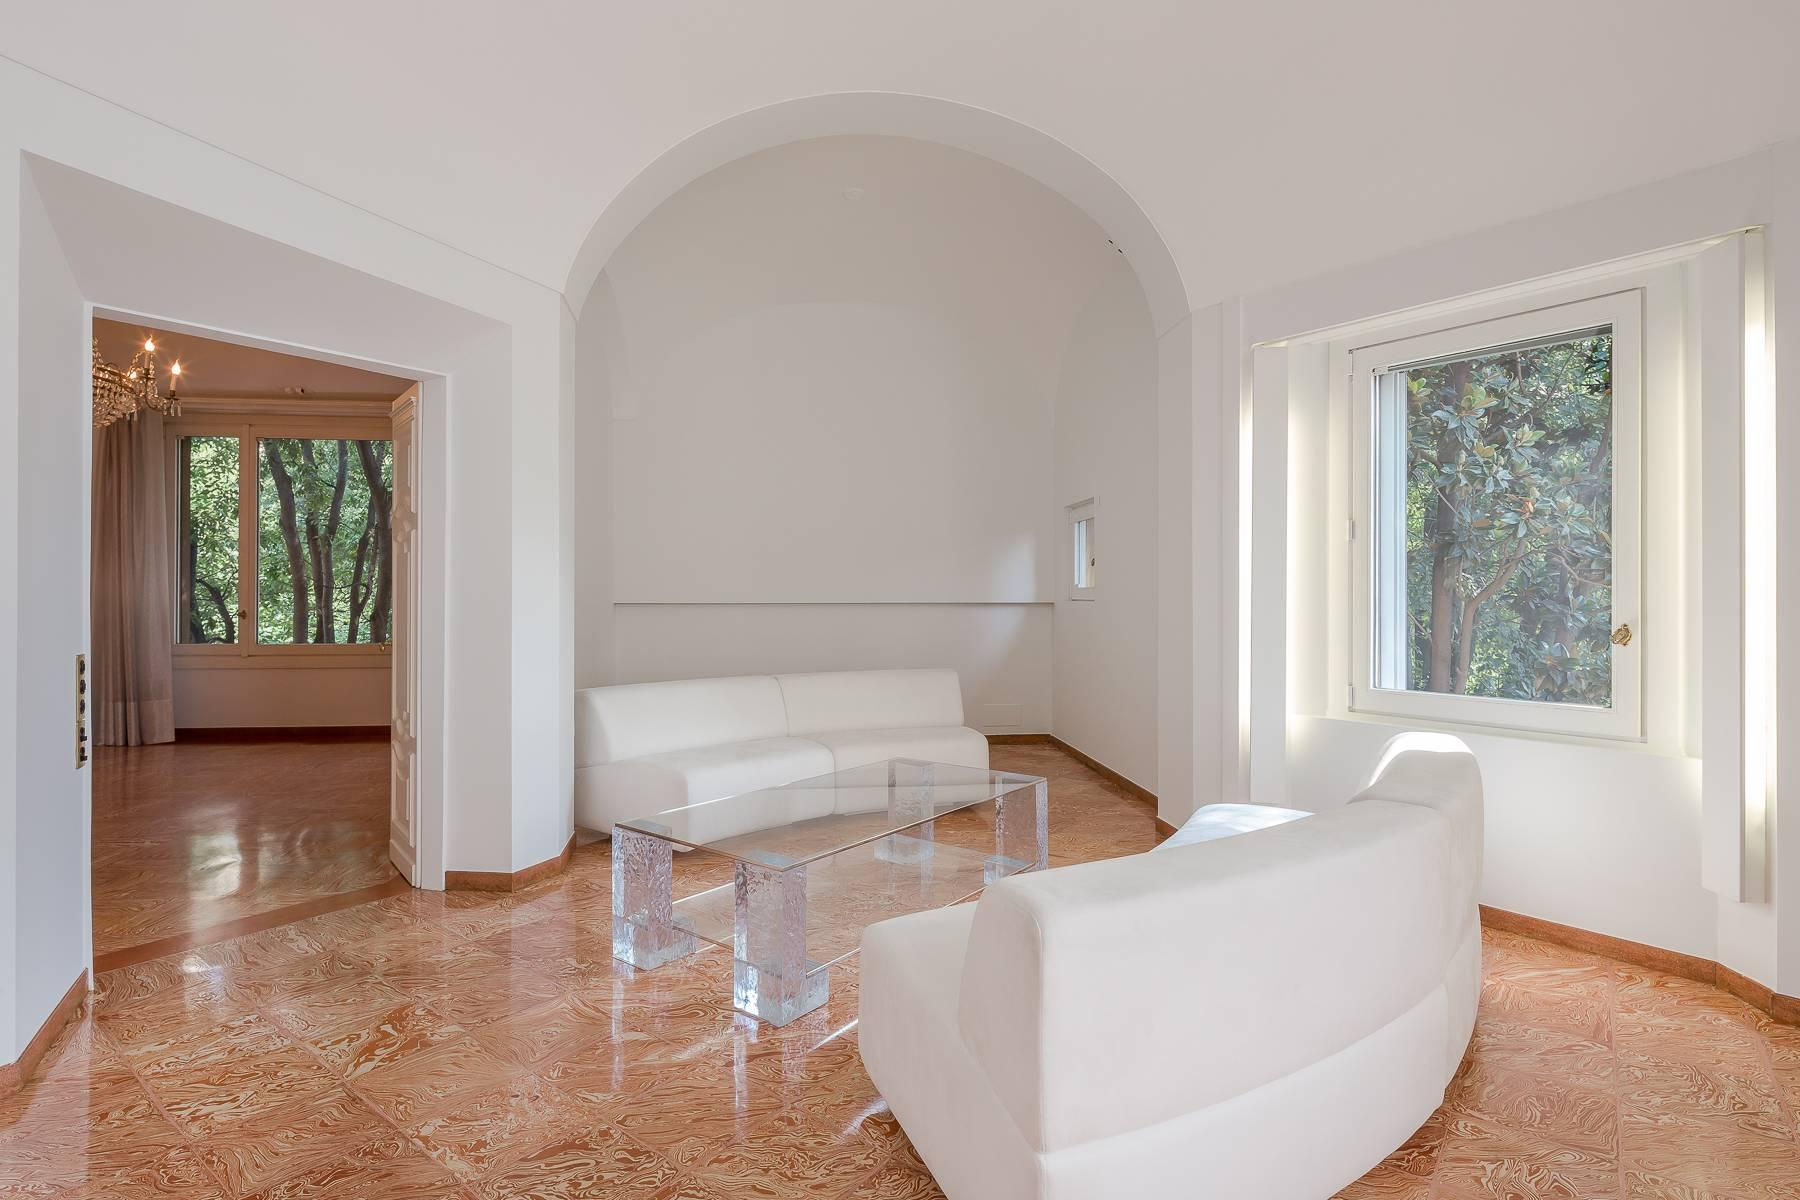 Inviting 482 sqm property with a view of the greenery in the XX Settembre / Tamburini area - 6